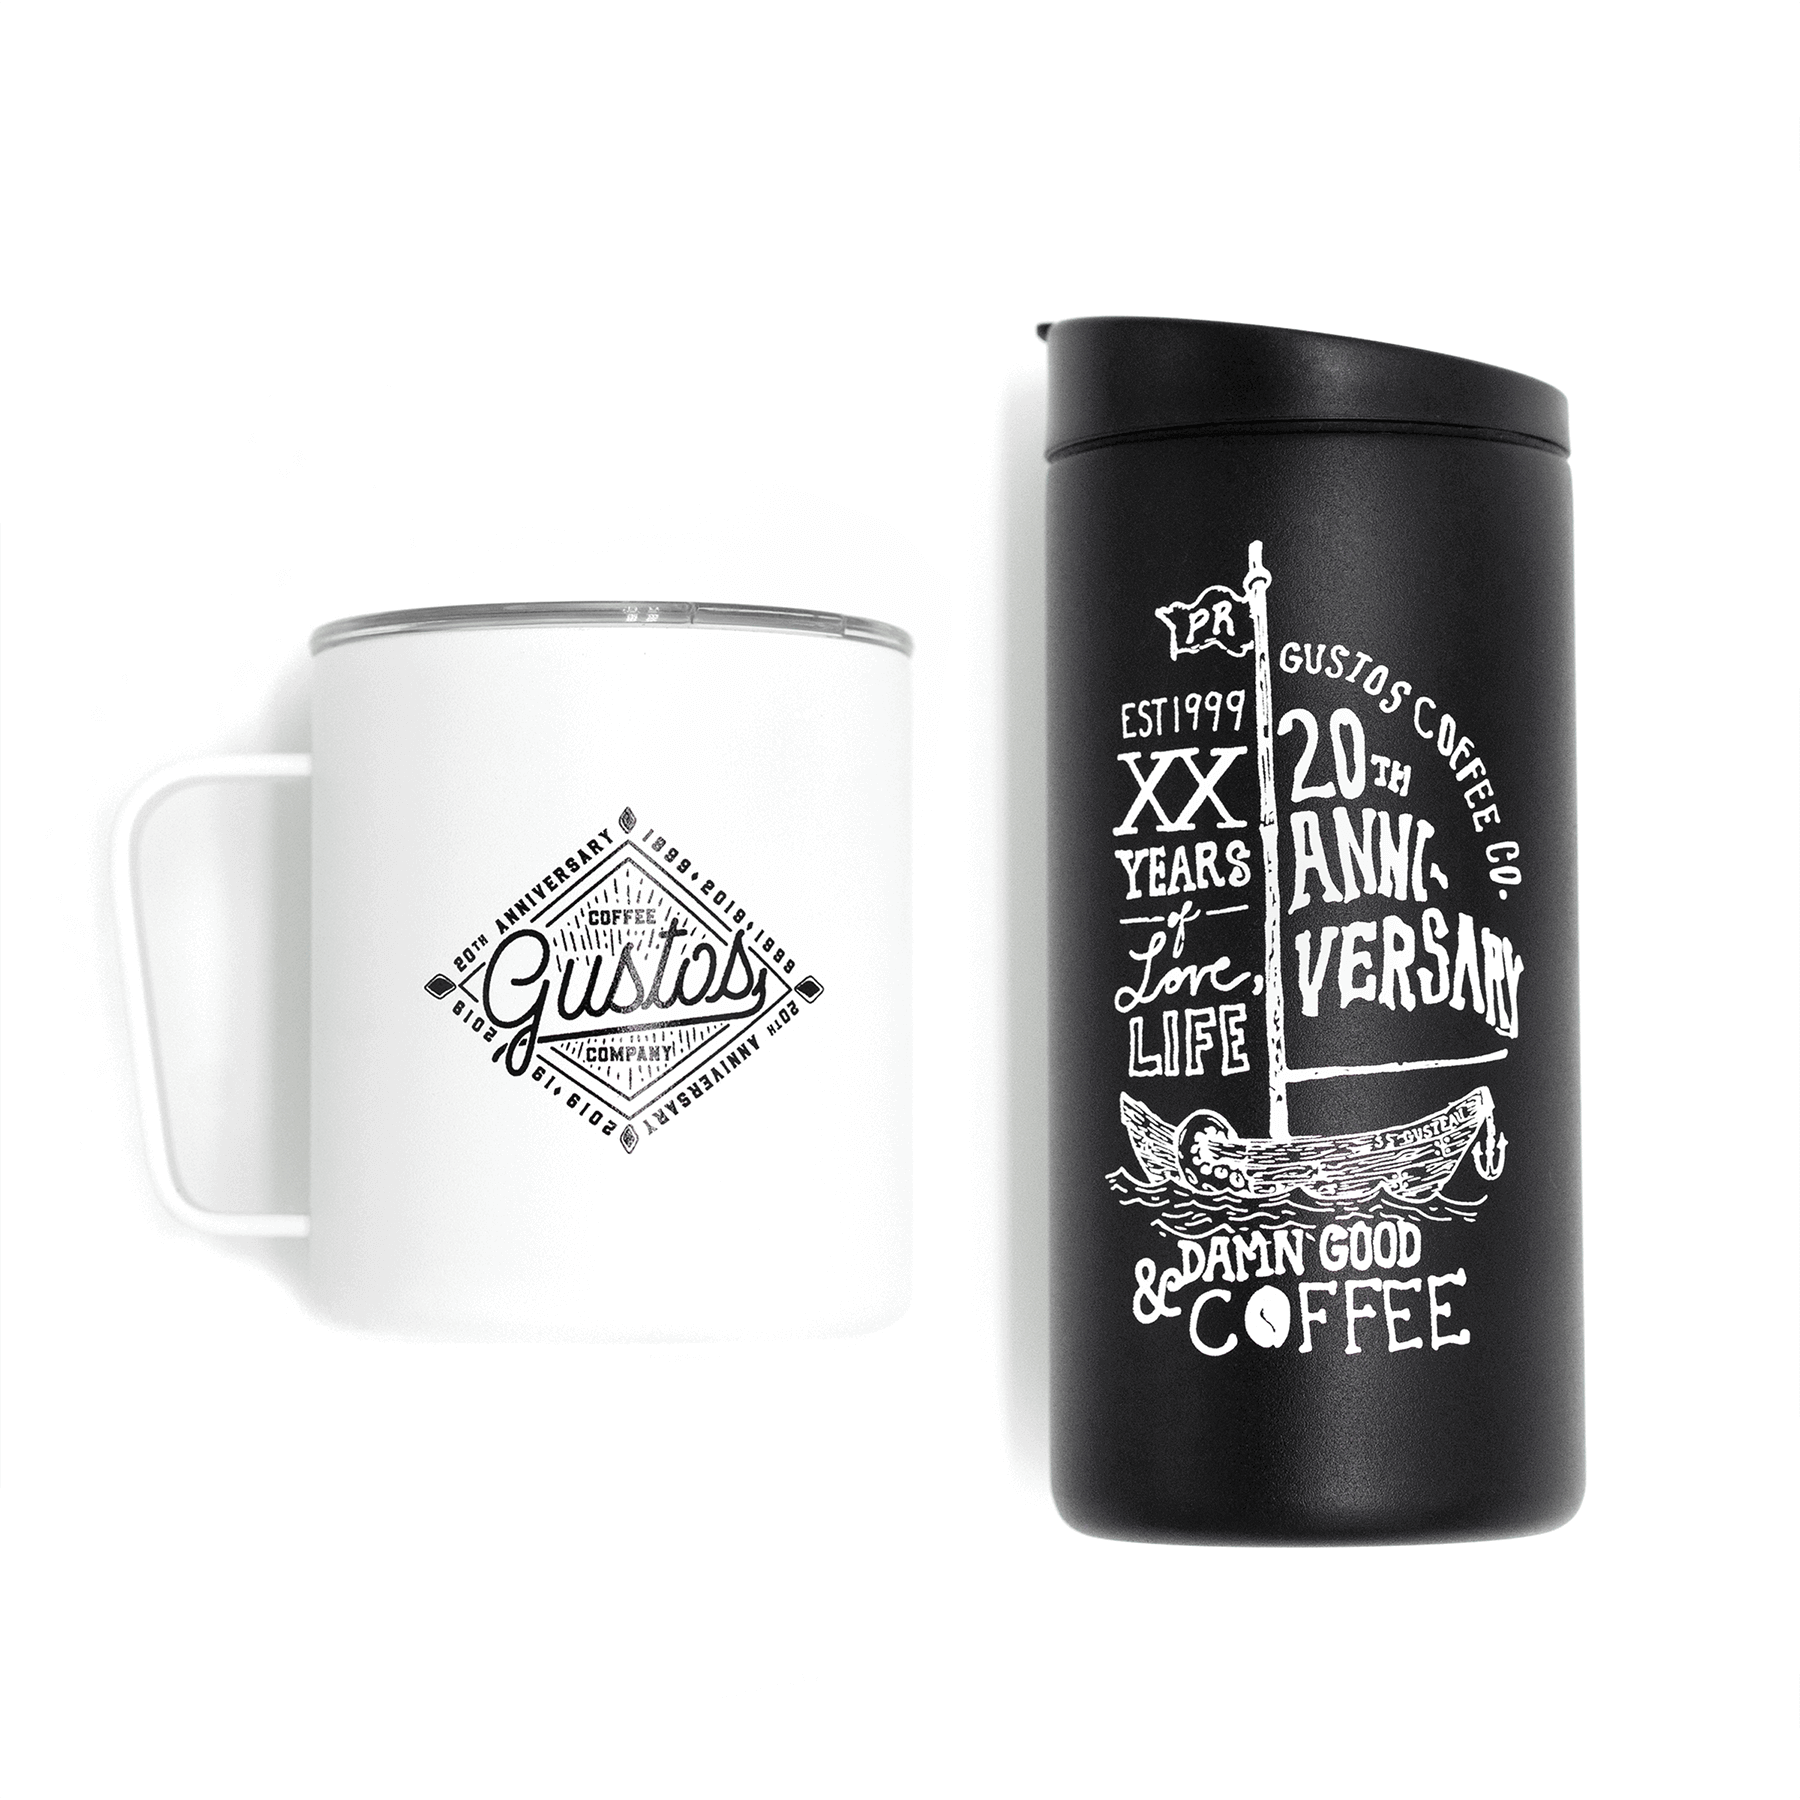 MiiR camp cup and 12 oz tumbler gift set duo